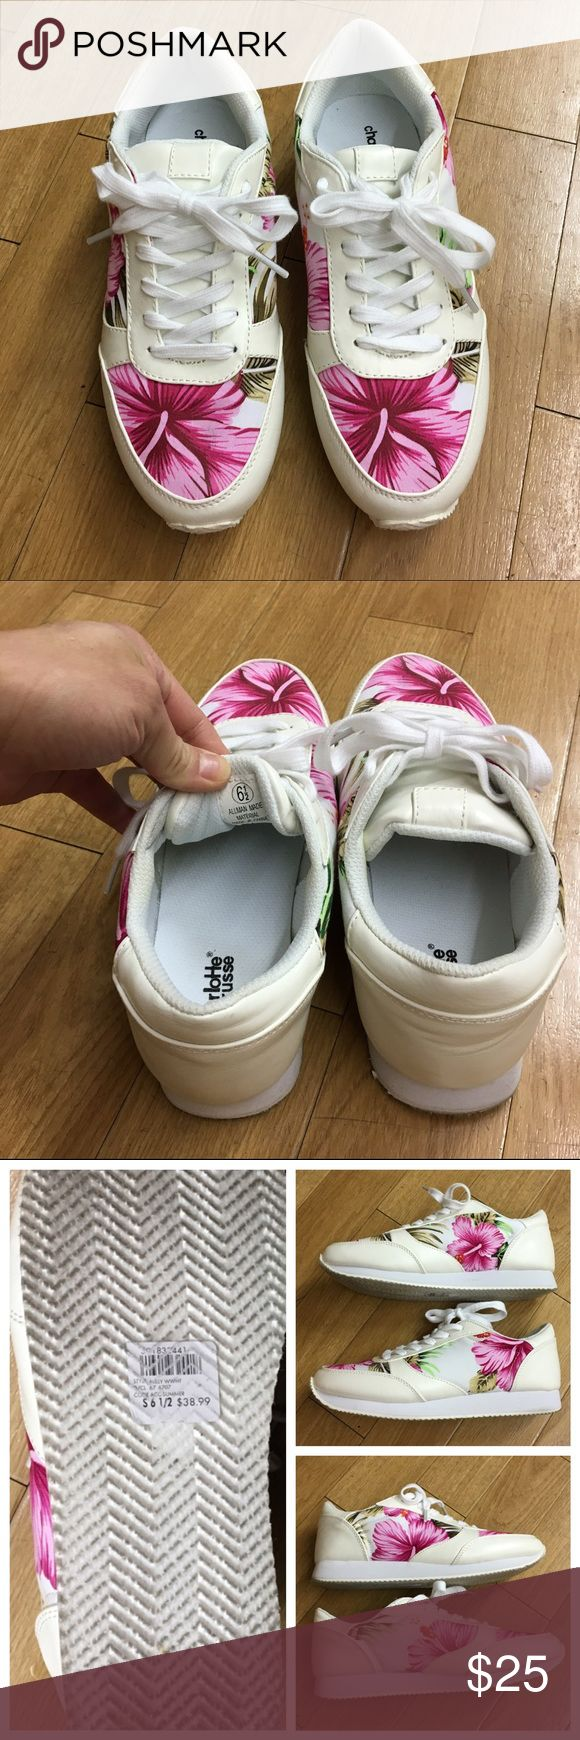 CHARLOTTE RUSSE Hawaiian sneakers CHARLOTTE RUSSE white Hawaiian print sneakers | only worn once for an hour) | size 6.5 | bought for $38.99 (price tag still on bottom of shoe) | such cute and comfy fashionable sneakers! Charlotte Russe Shoes Sneakers